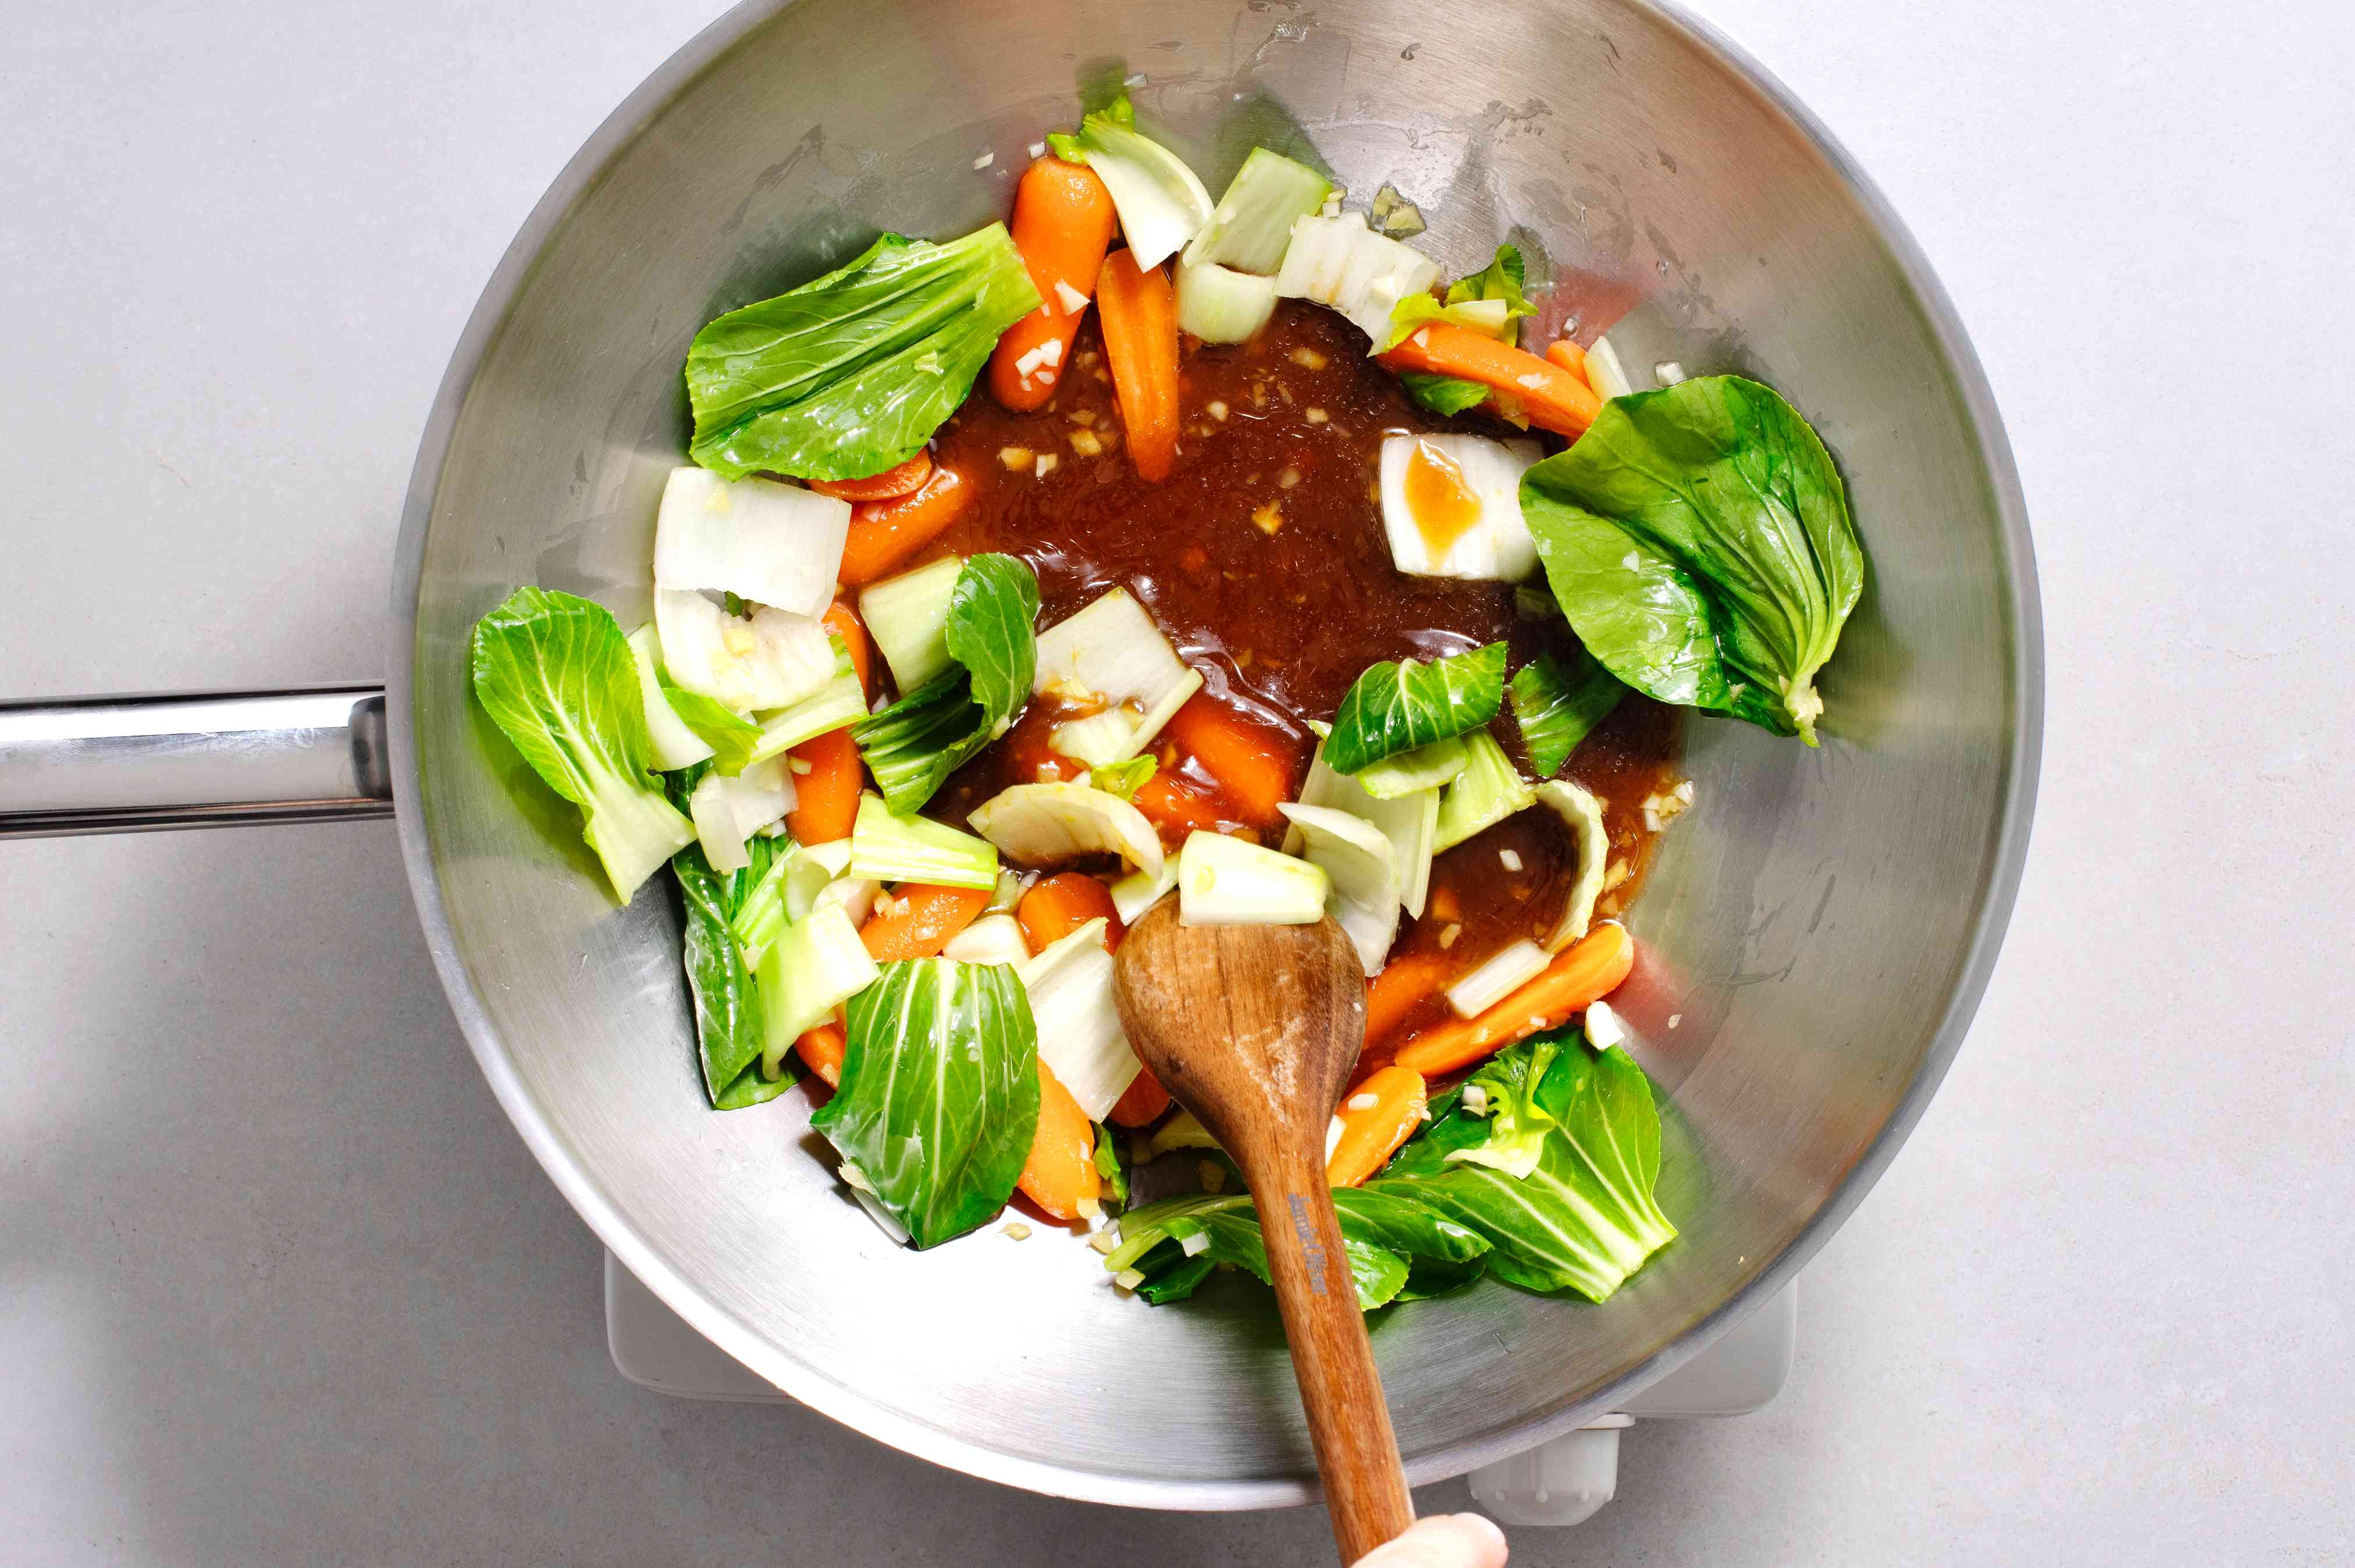 vegetables and sauce cooking in a wok